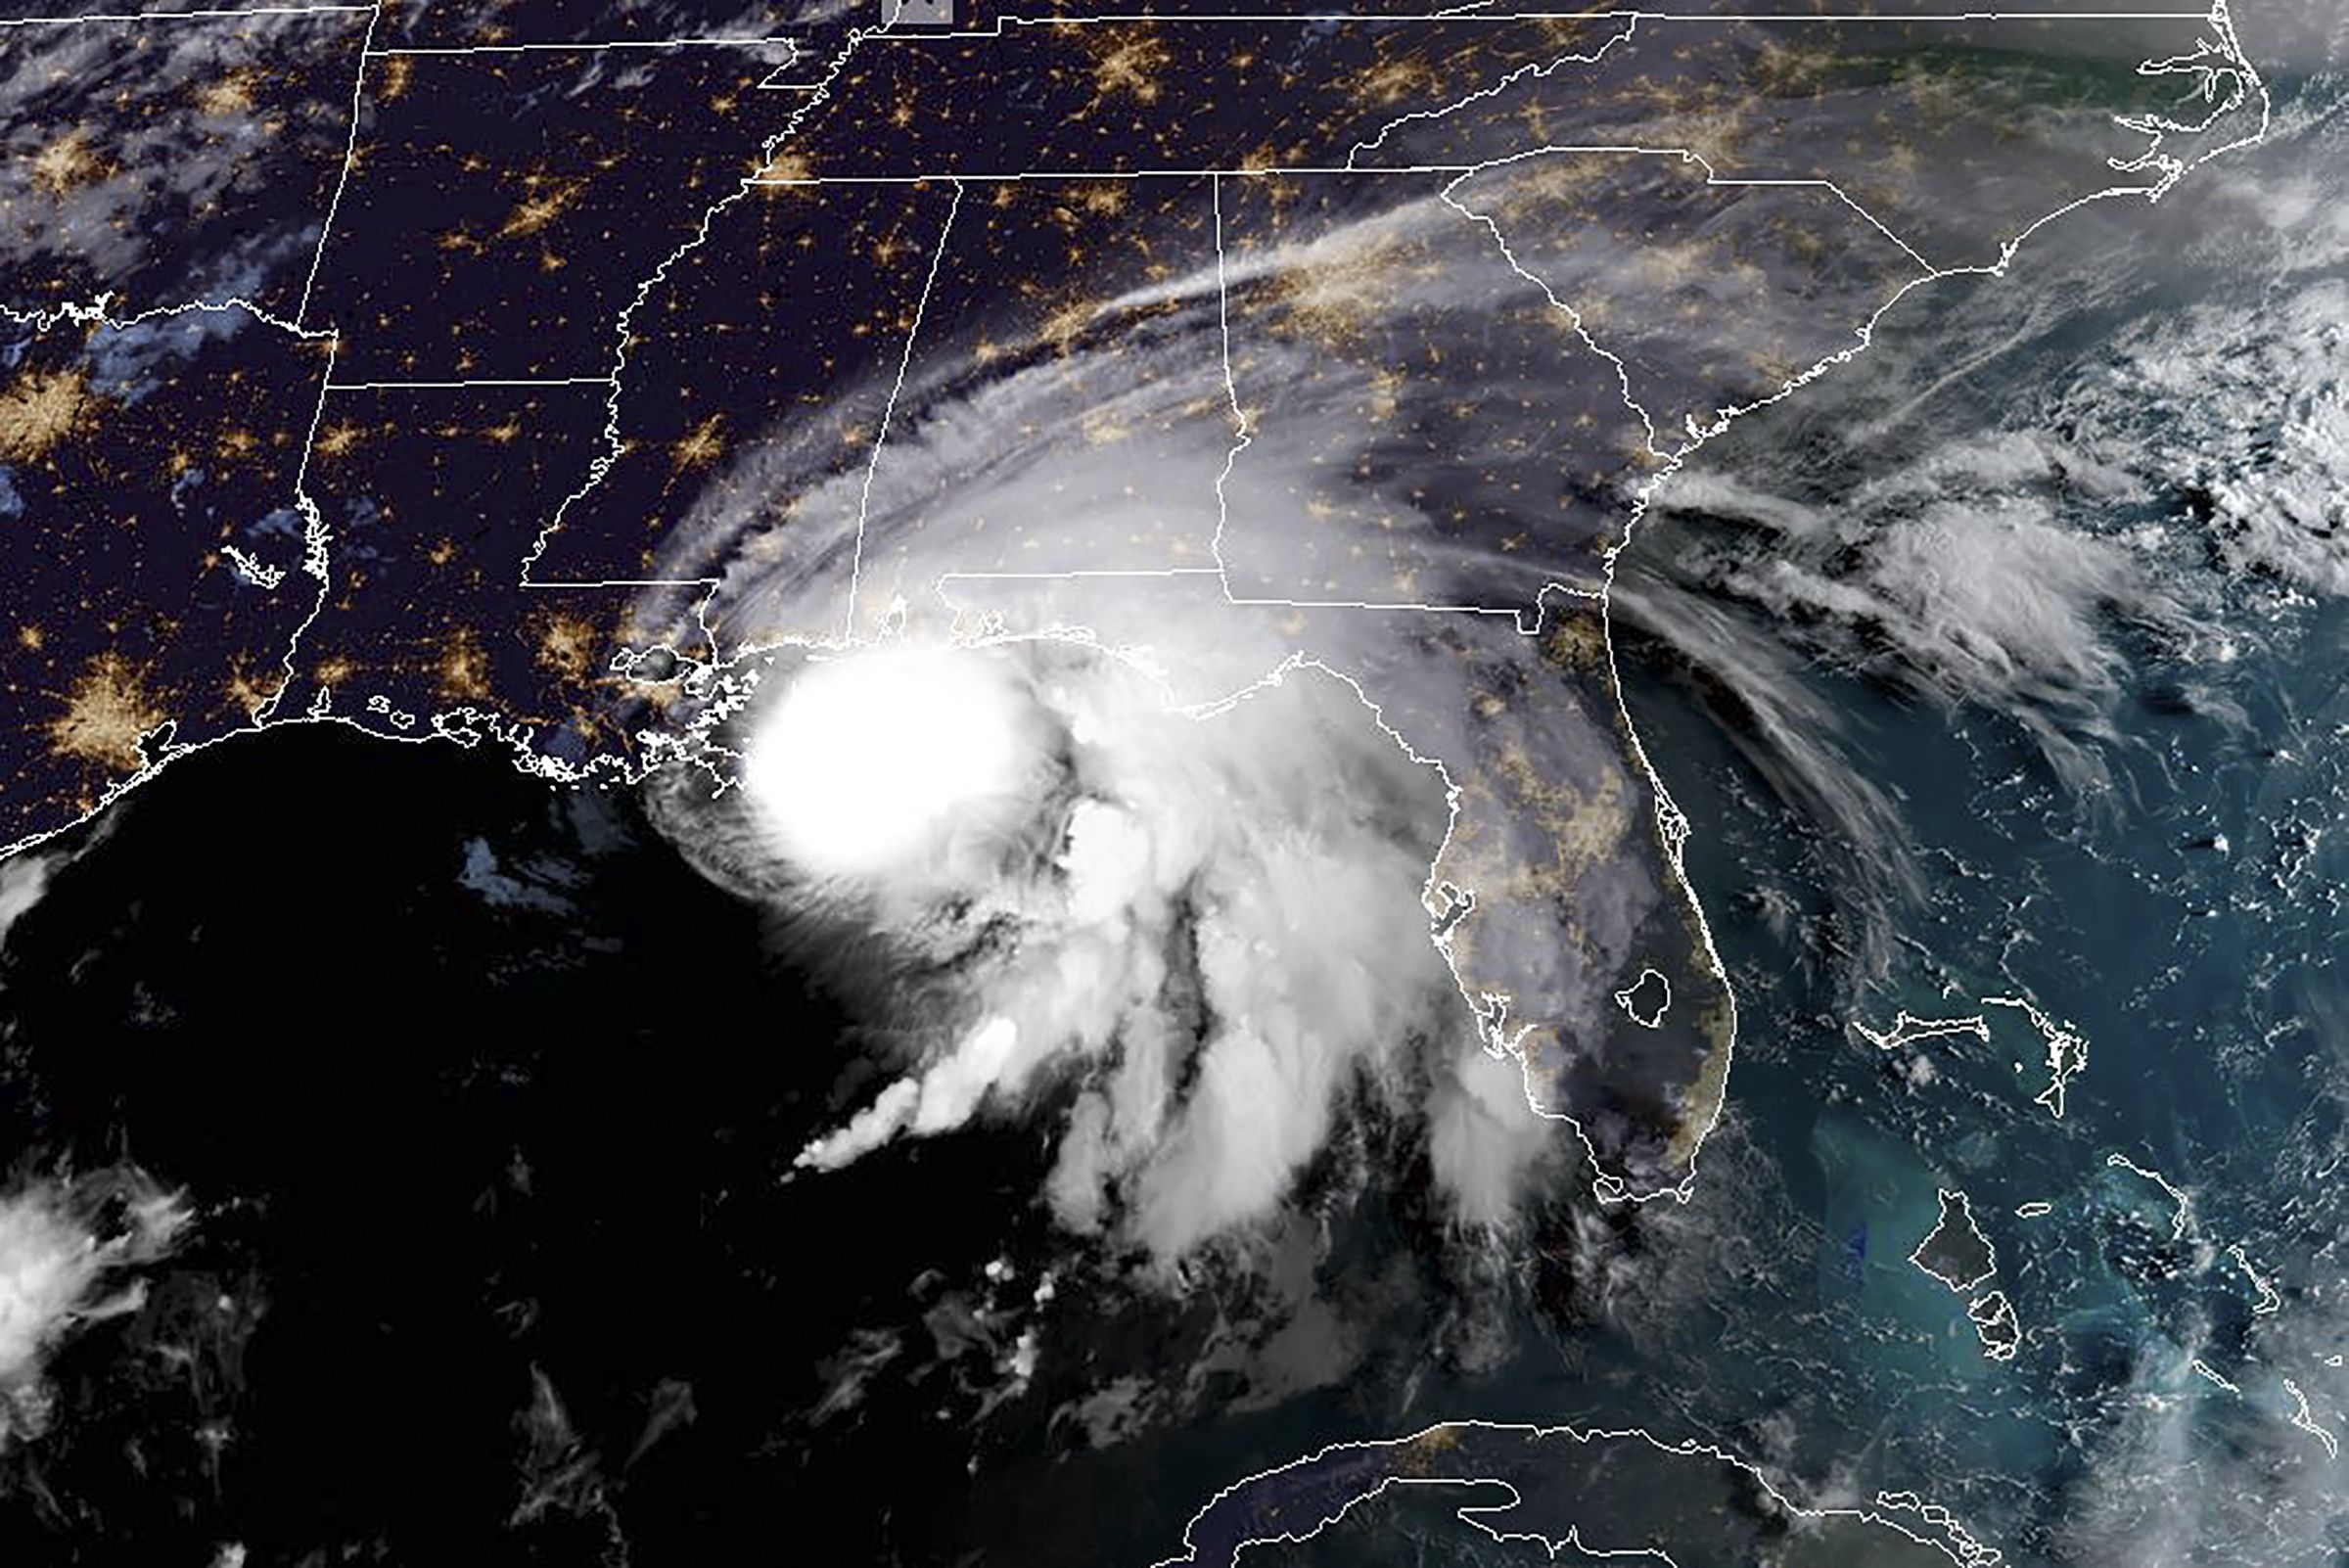 """This RAMMB/NOAA satellite image shows Hurricane Sally off the US Gulf Coast on September 15, 2020, at 12:00 UTC. - Hurricane Sally is set to hit parts of the US Gulf Coast with rain for another day Tuesday before it makes landfall, raising fears that significant flooding is in store for coastal Mississippi, Alabama and the Florida Panhandle. The center of Sally -- a Category 1 storm with maximum sustained winds of 85 mph -- was moving over the Gulf of Mexico and toward coastal Mississippi only at 2 mph early Tuesday. (Photo by Handout / RAMMB/NOAA/NESDIS / AFP) / RESTRICTED TO EDITORIAL USE - MANDATORY CREDIT """"AFP PHOTO / RAMMB/NOAA"""" - NO MARKETING - NO ADVERTISING CAMPAIGNS - DISTRIBUTED AS A SERVICE TO CLIENTS"""